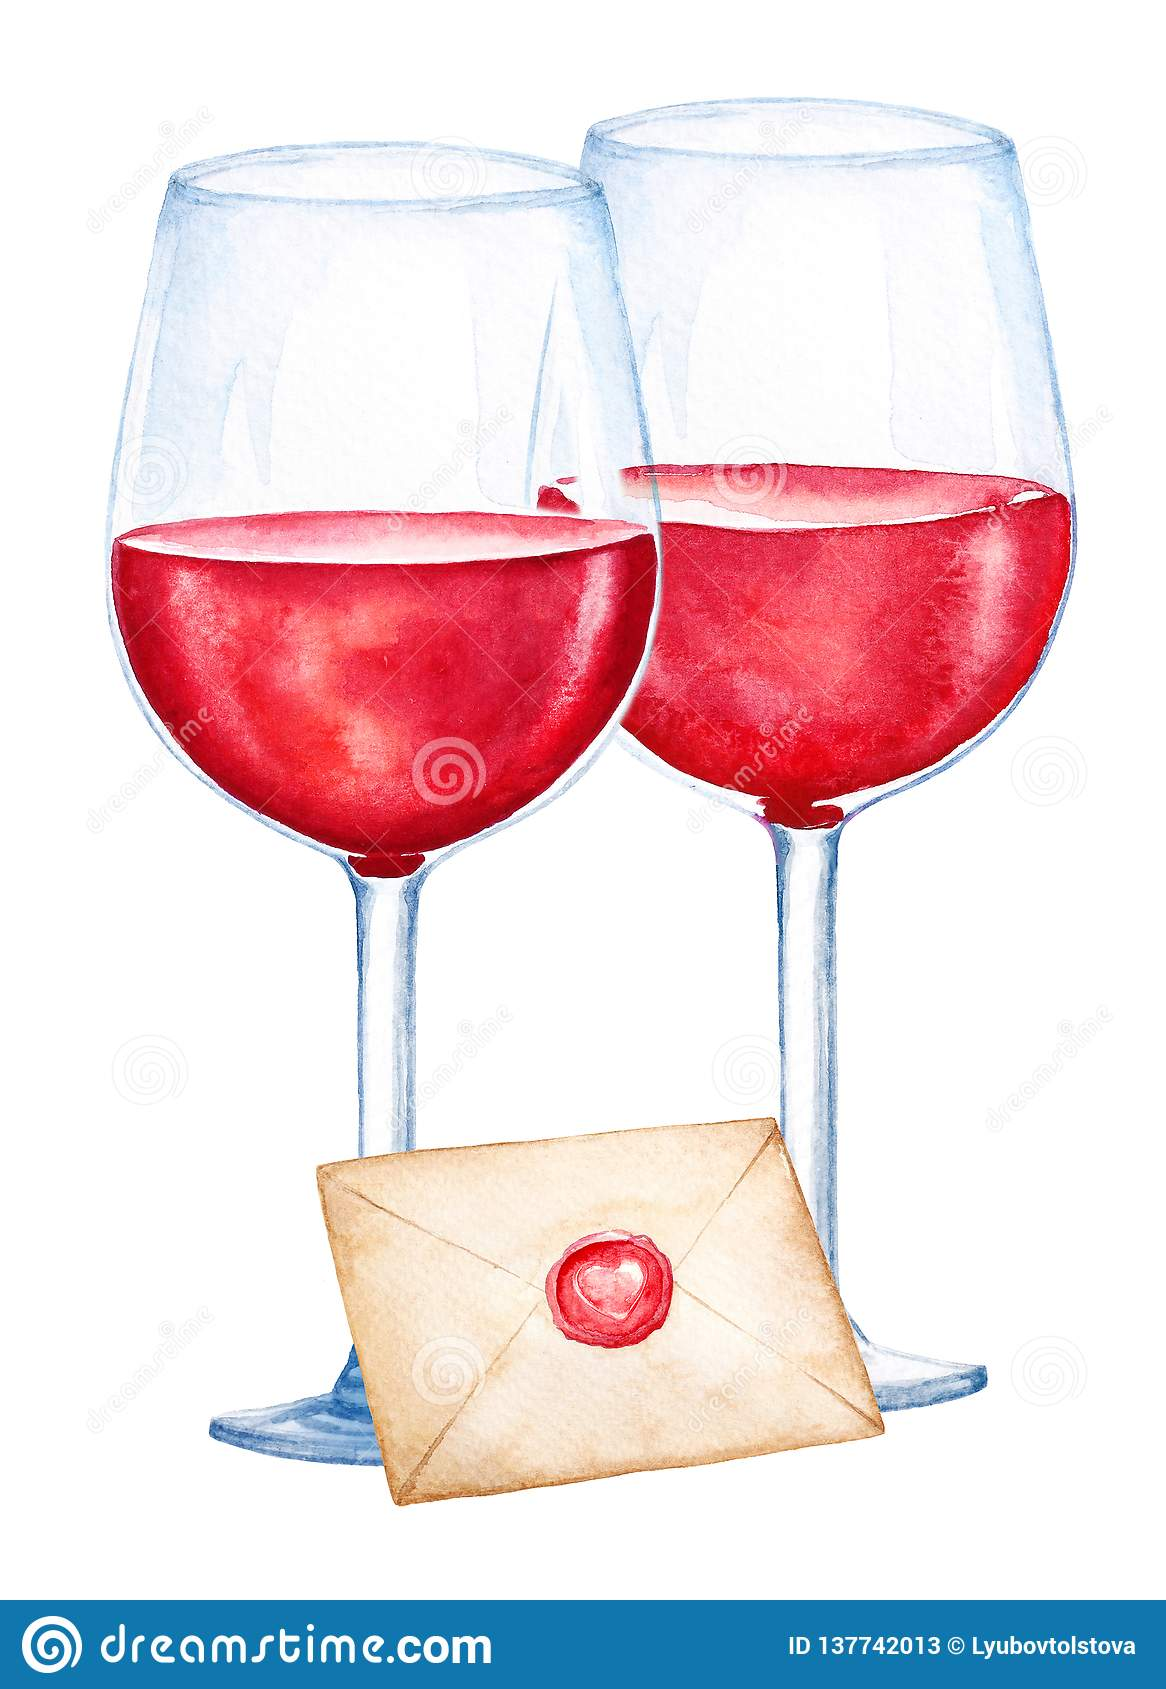 Watercolor illustartion of two glasses with red wine and closed envelope on white background